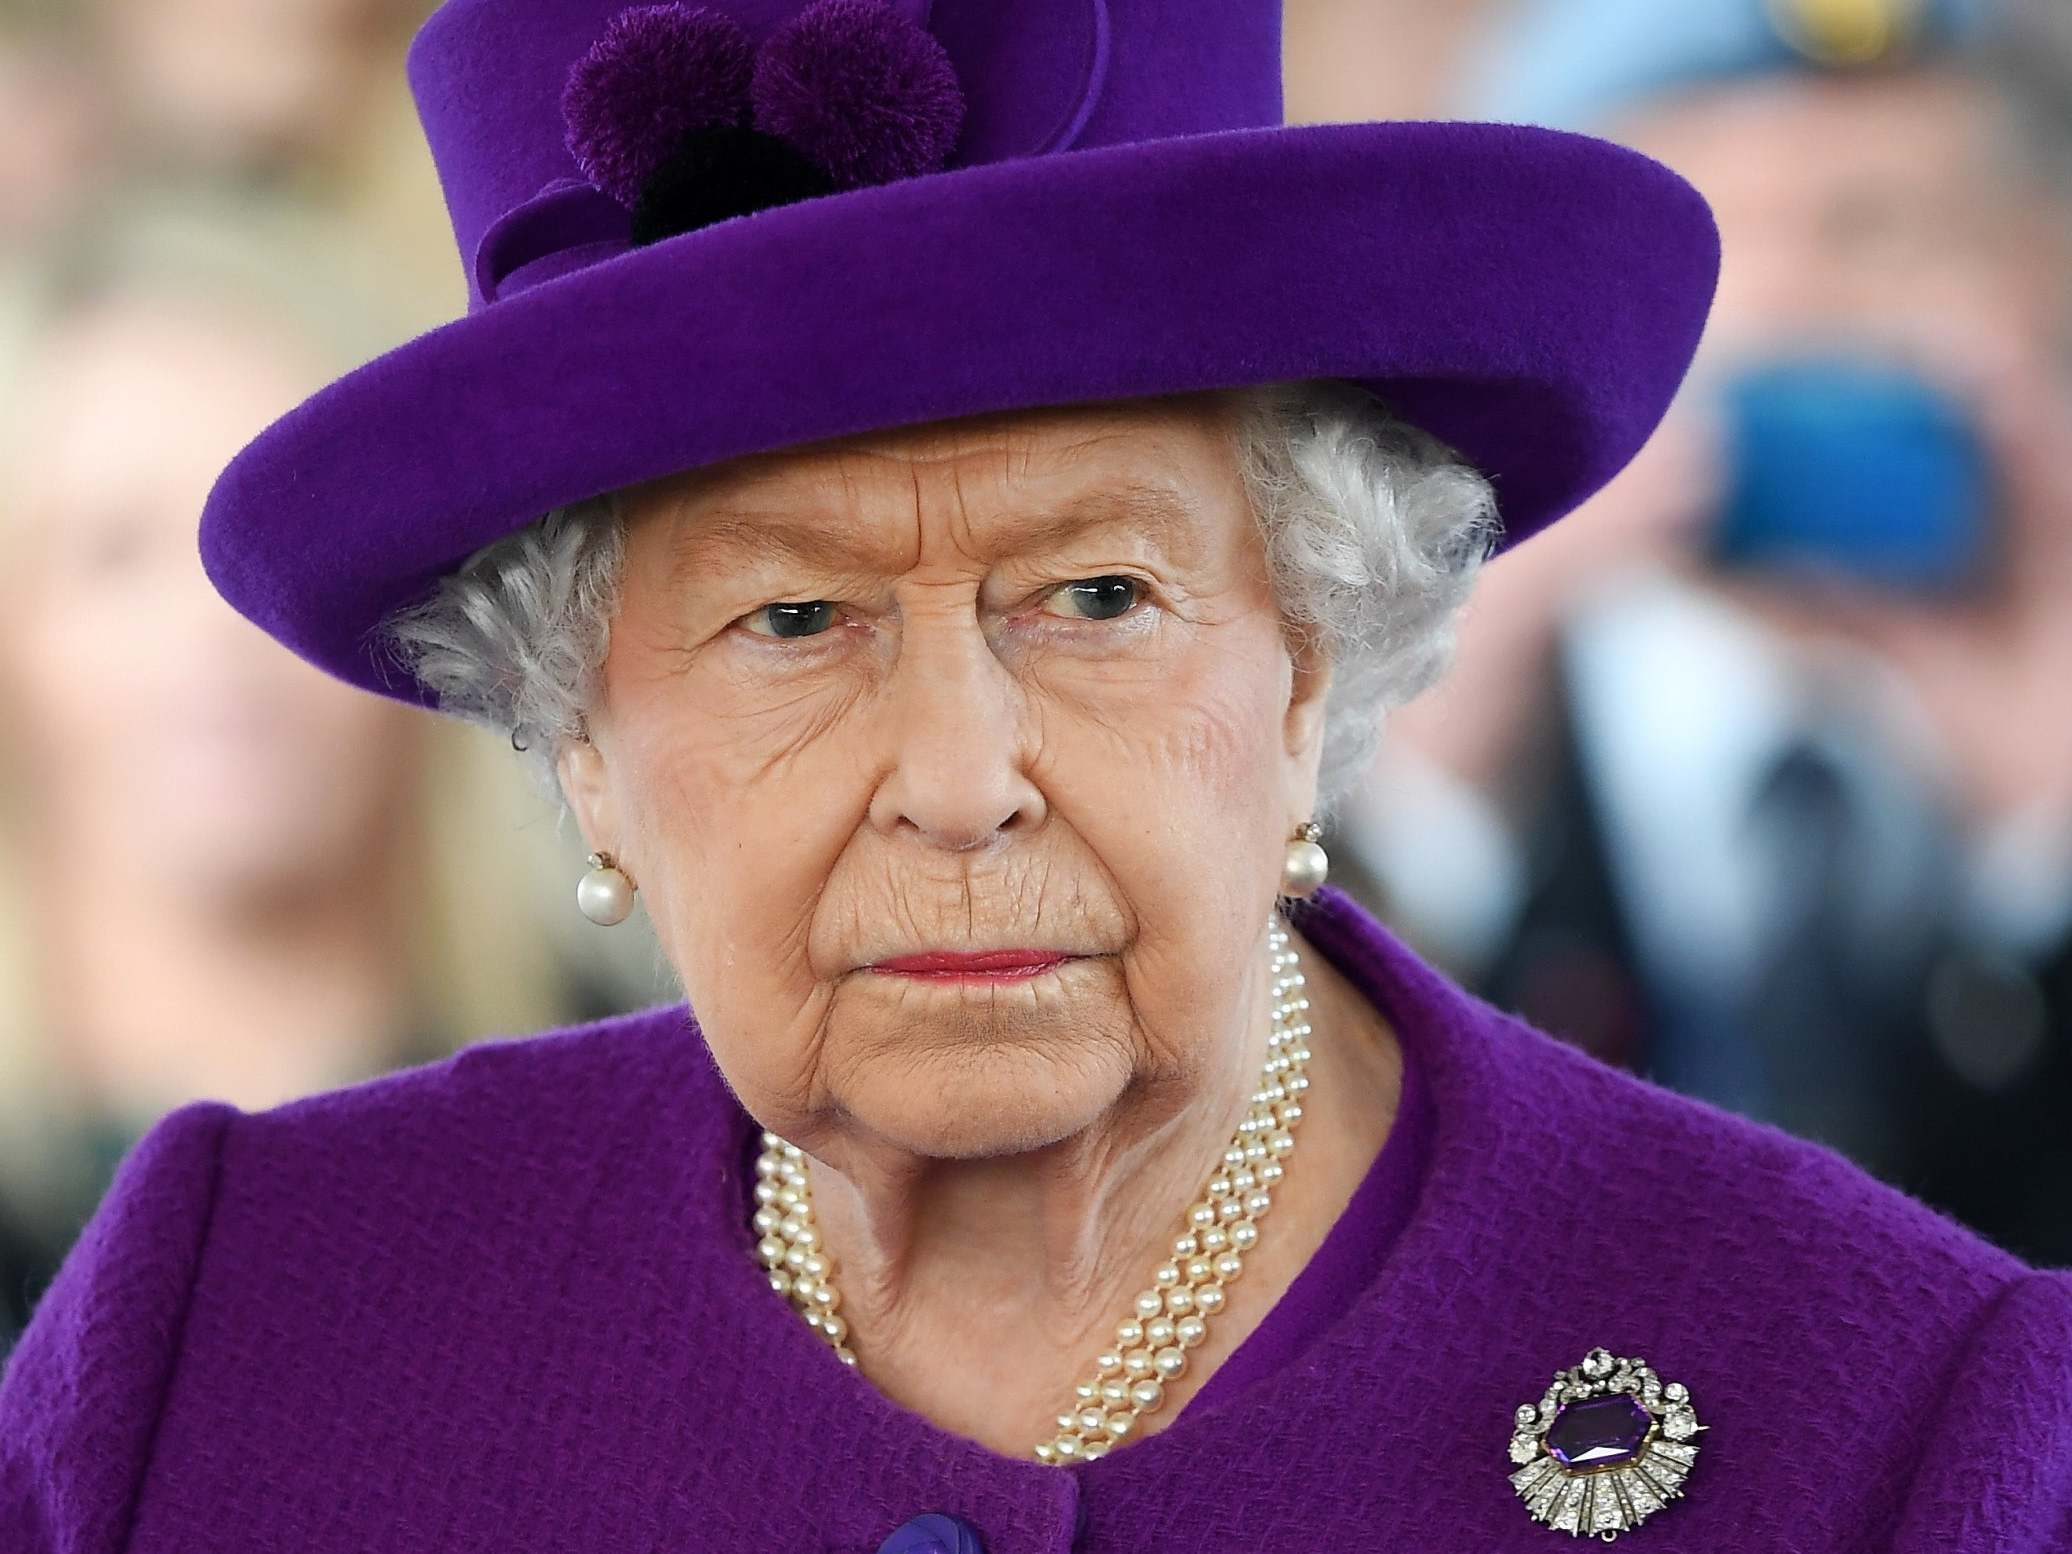 The heartbreaking reason the Queen doesn't celebrate her accession